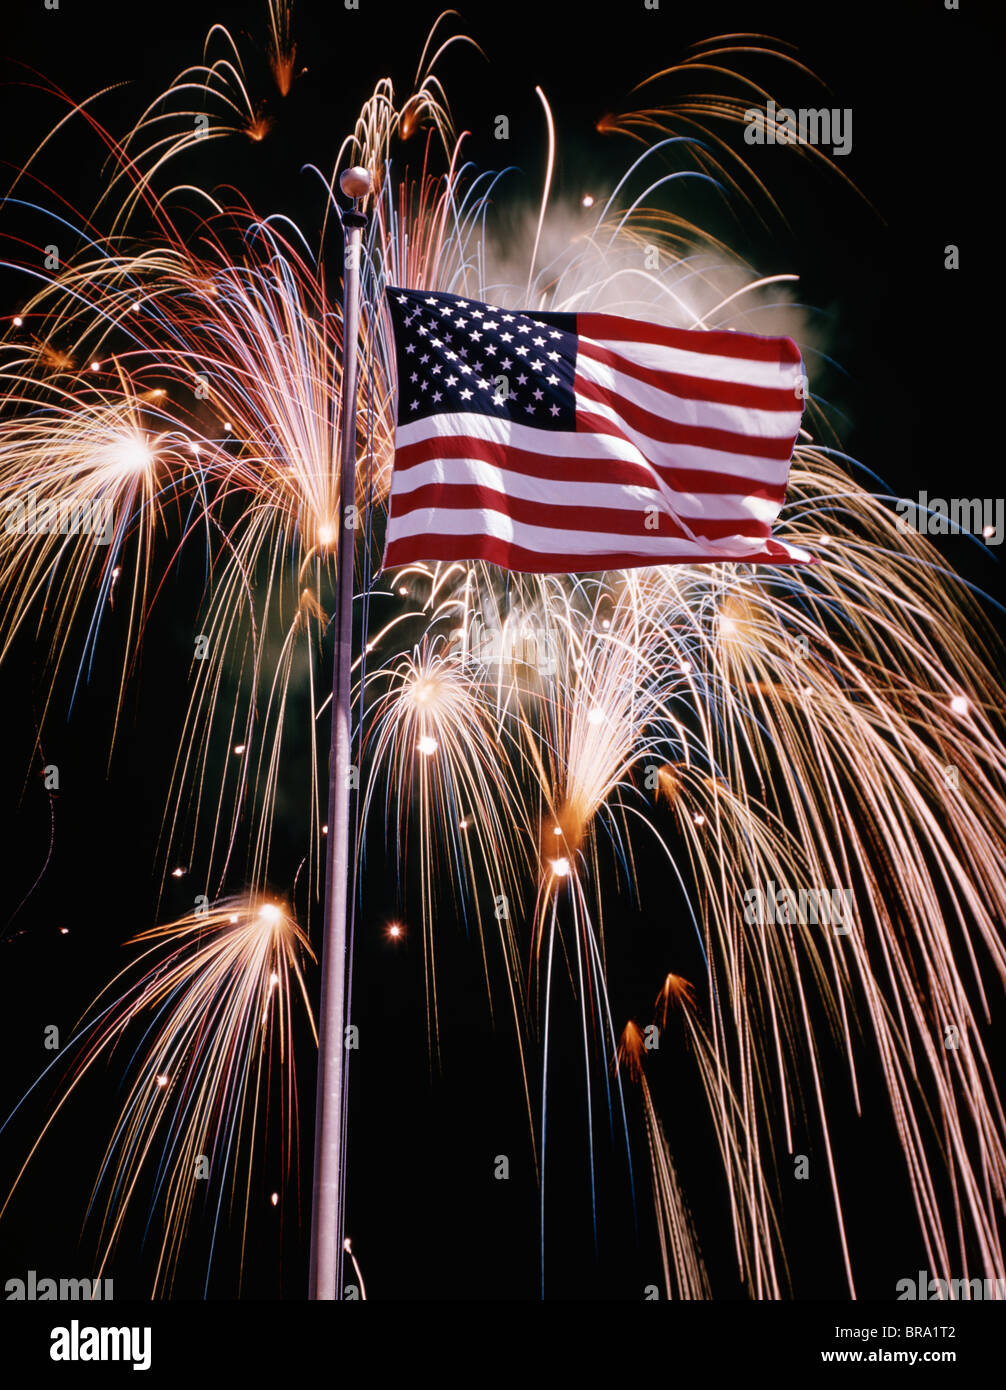 1970s american flag and fireworks stock image